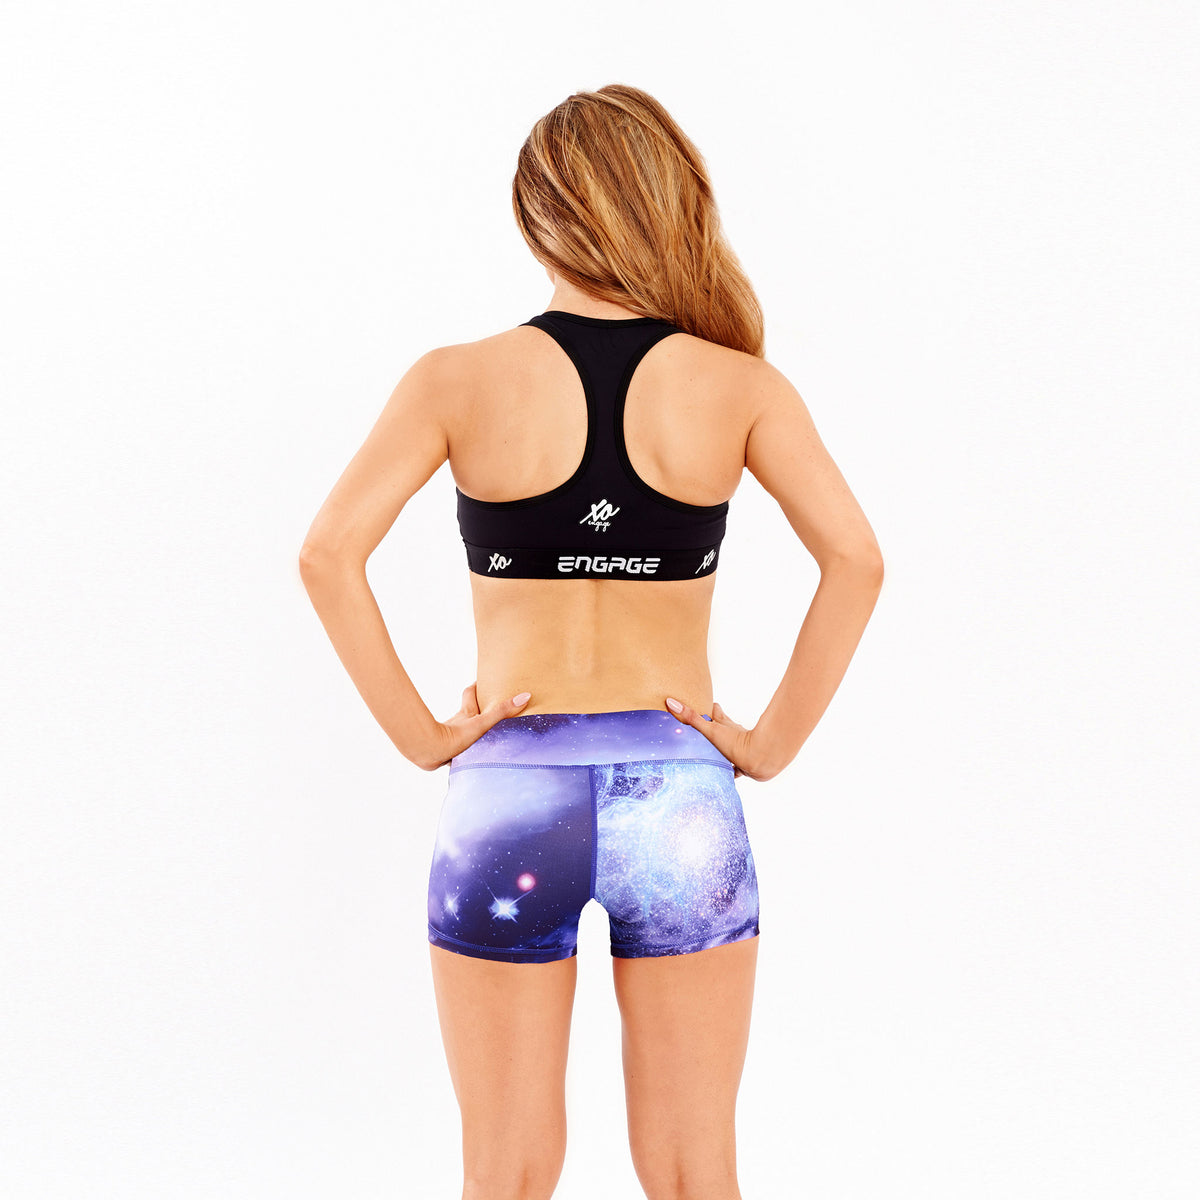 Booty Shorts - Galactic Booty Shorts Engage MMA Online Fight Store for Apparel, Fightwear and Fight Gear Equipment